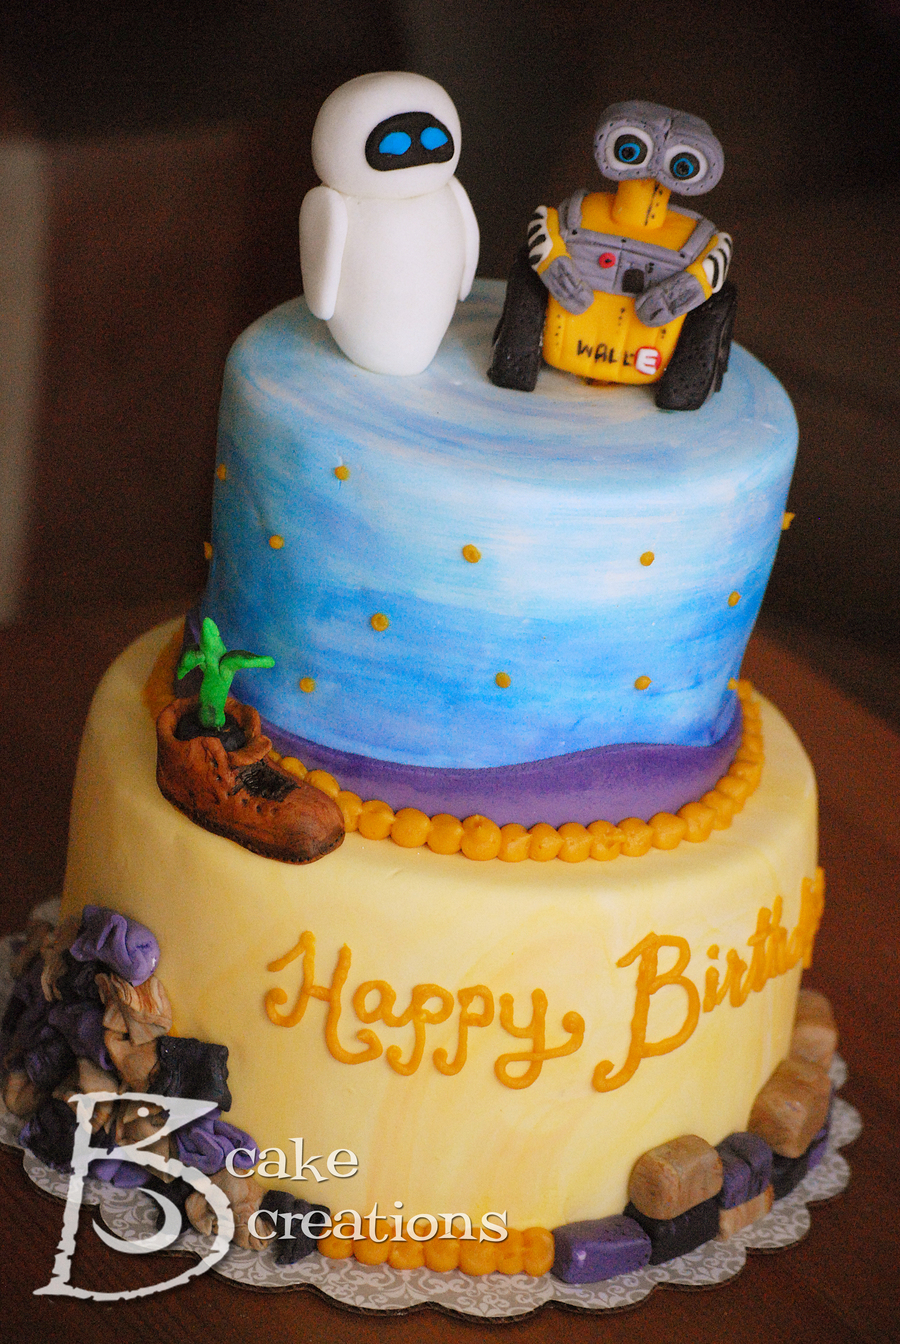 Wall E Cake On Central